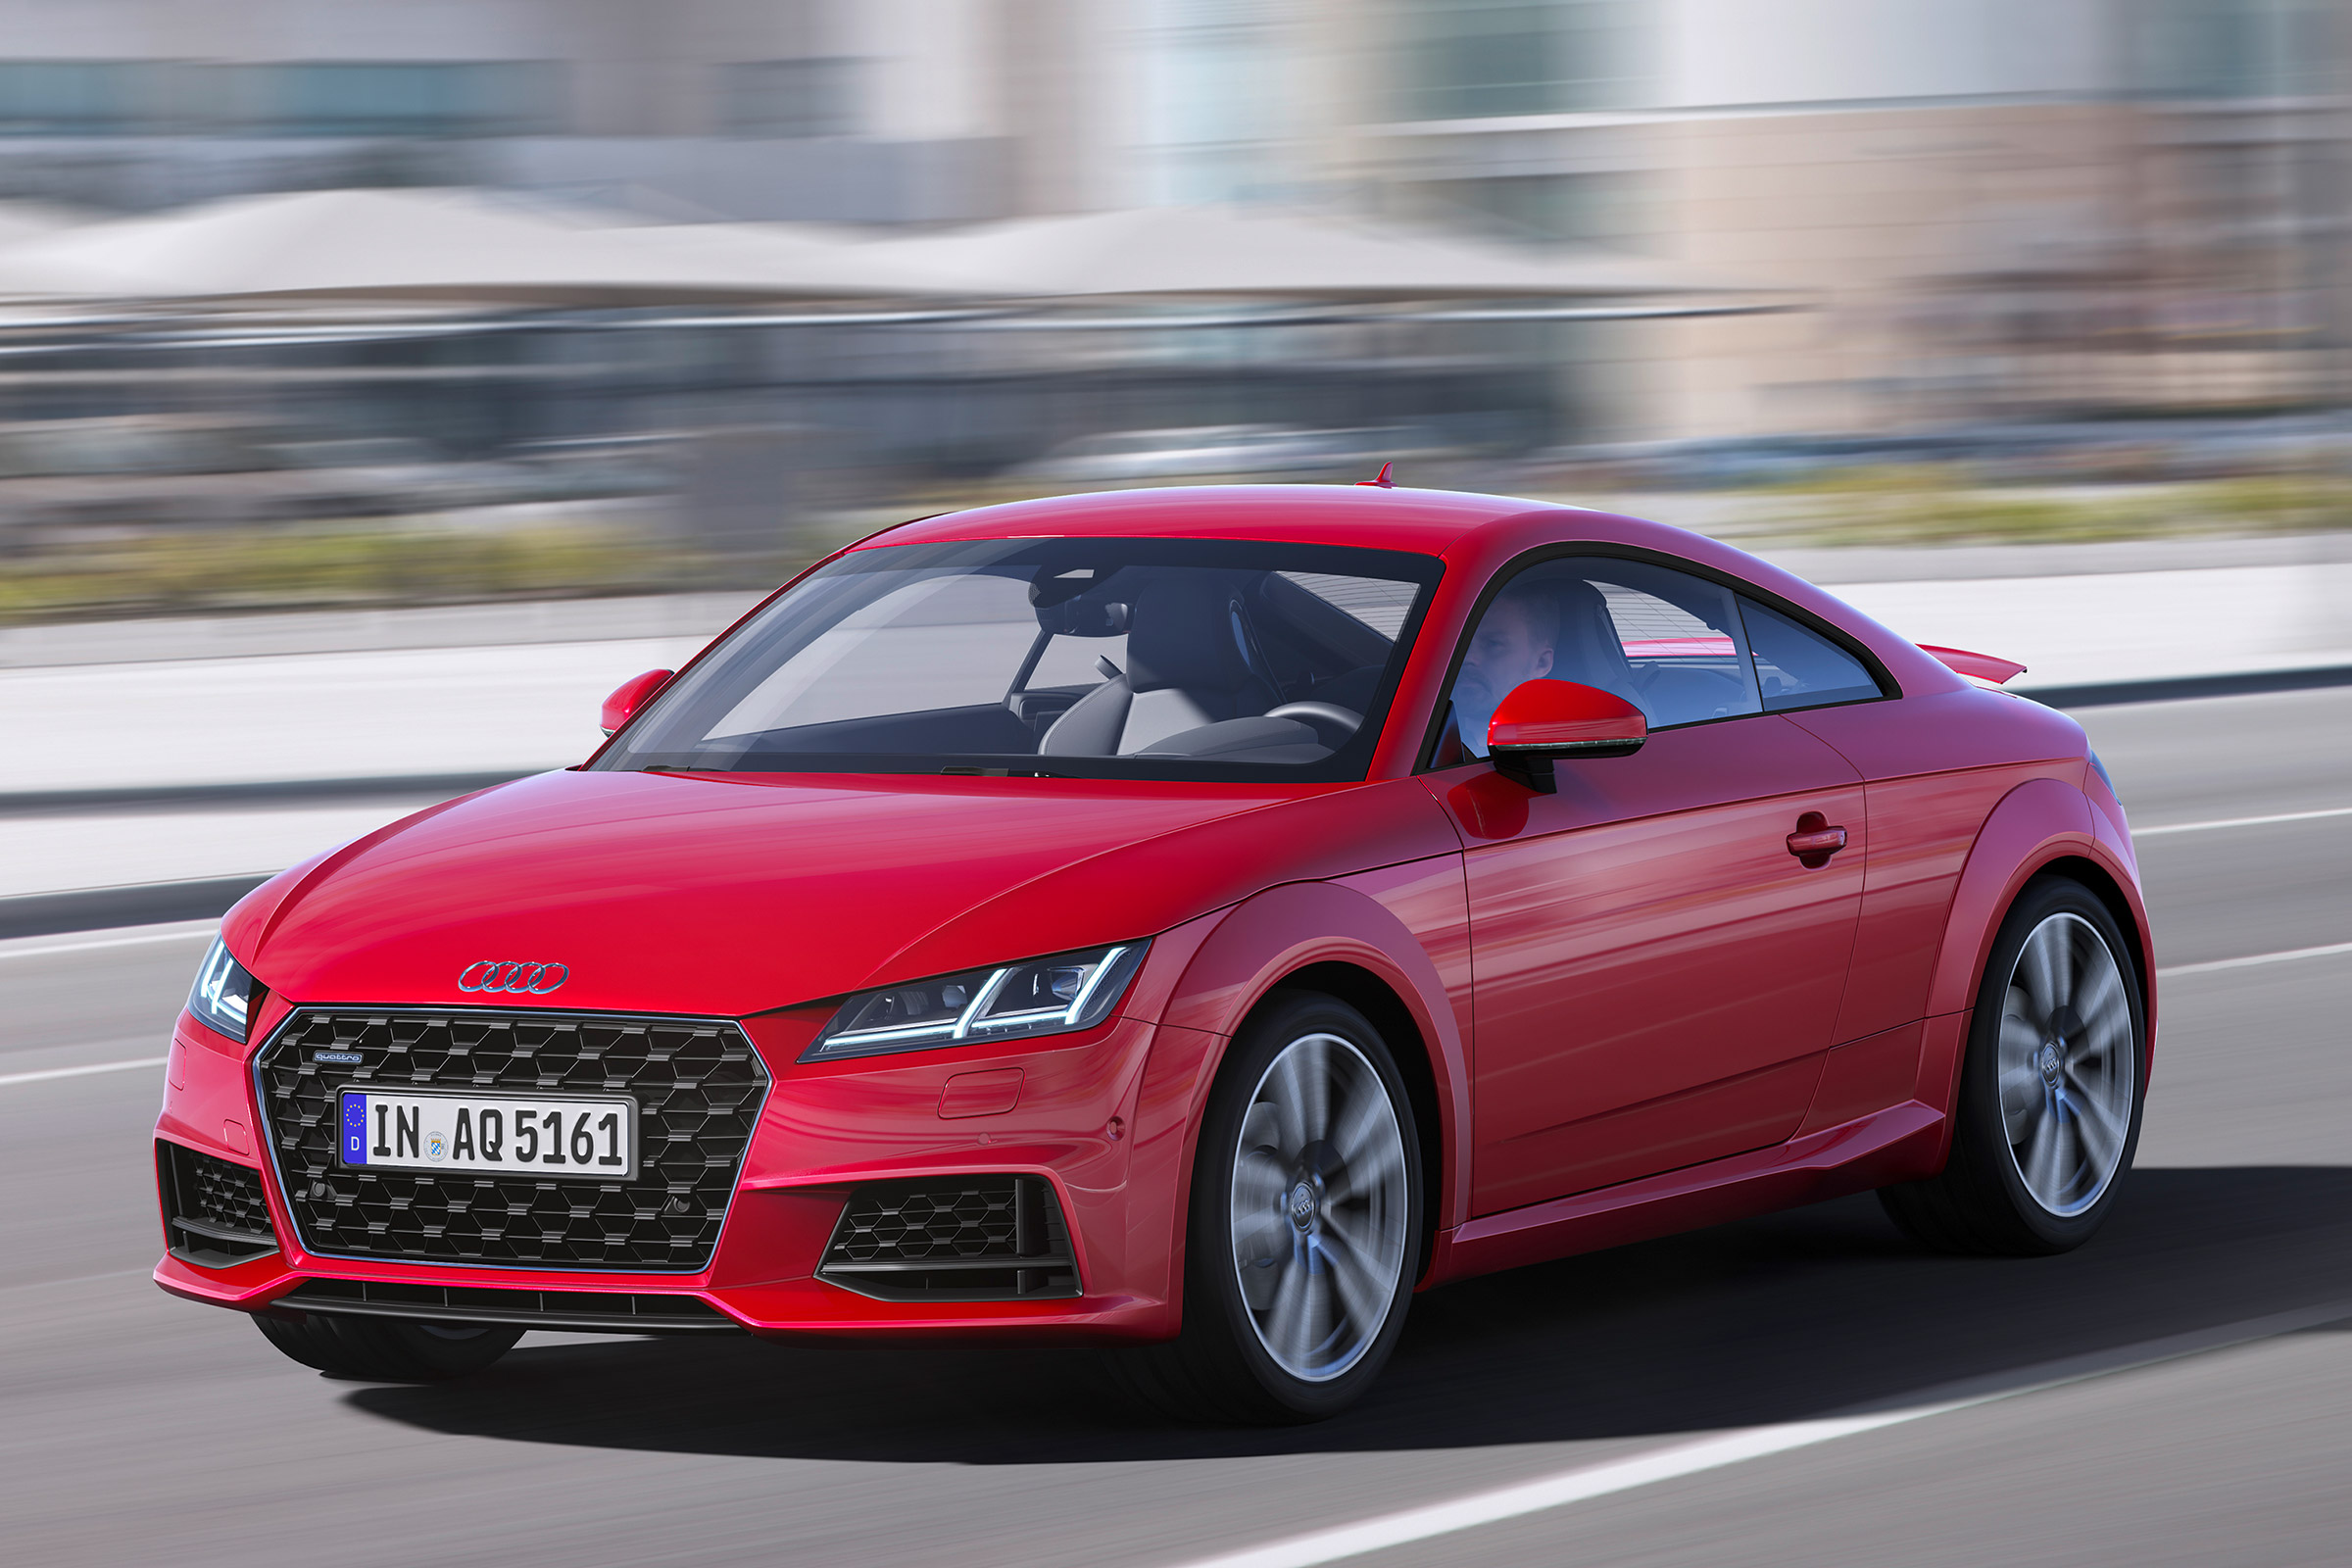 New 2019 Audi TT: facelifted Coupe and Roadster revealed ...